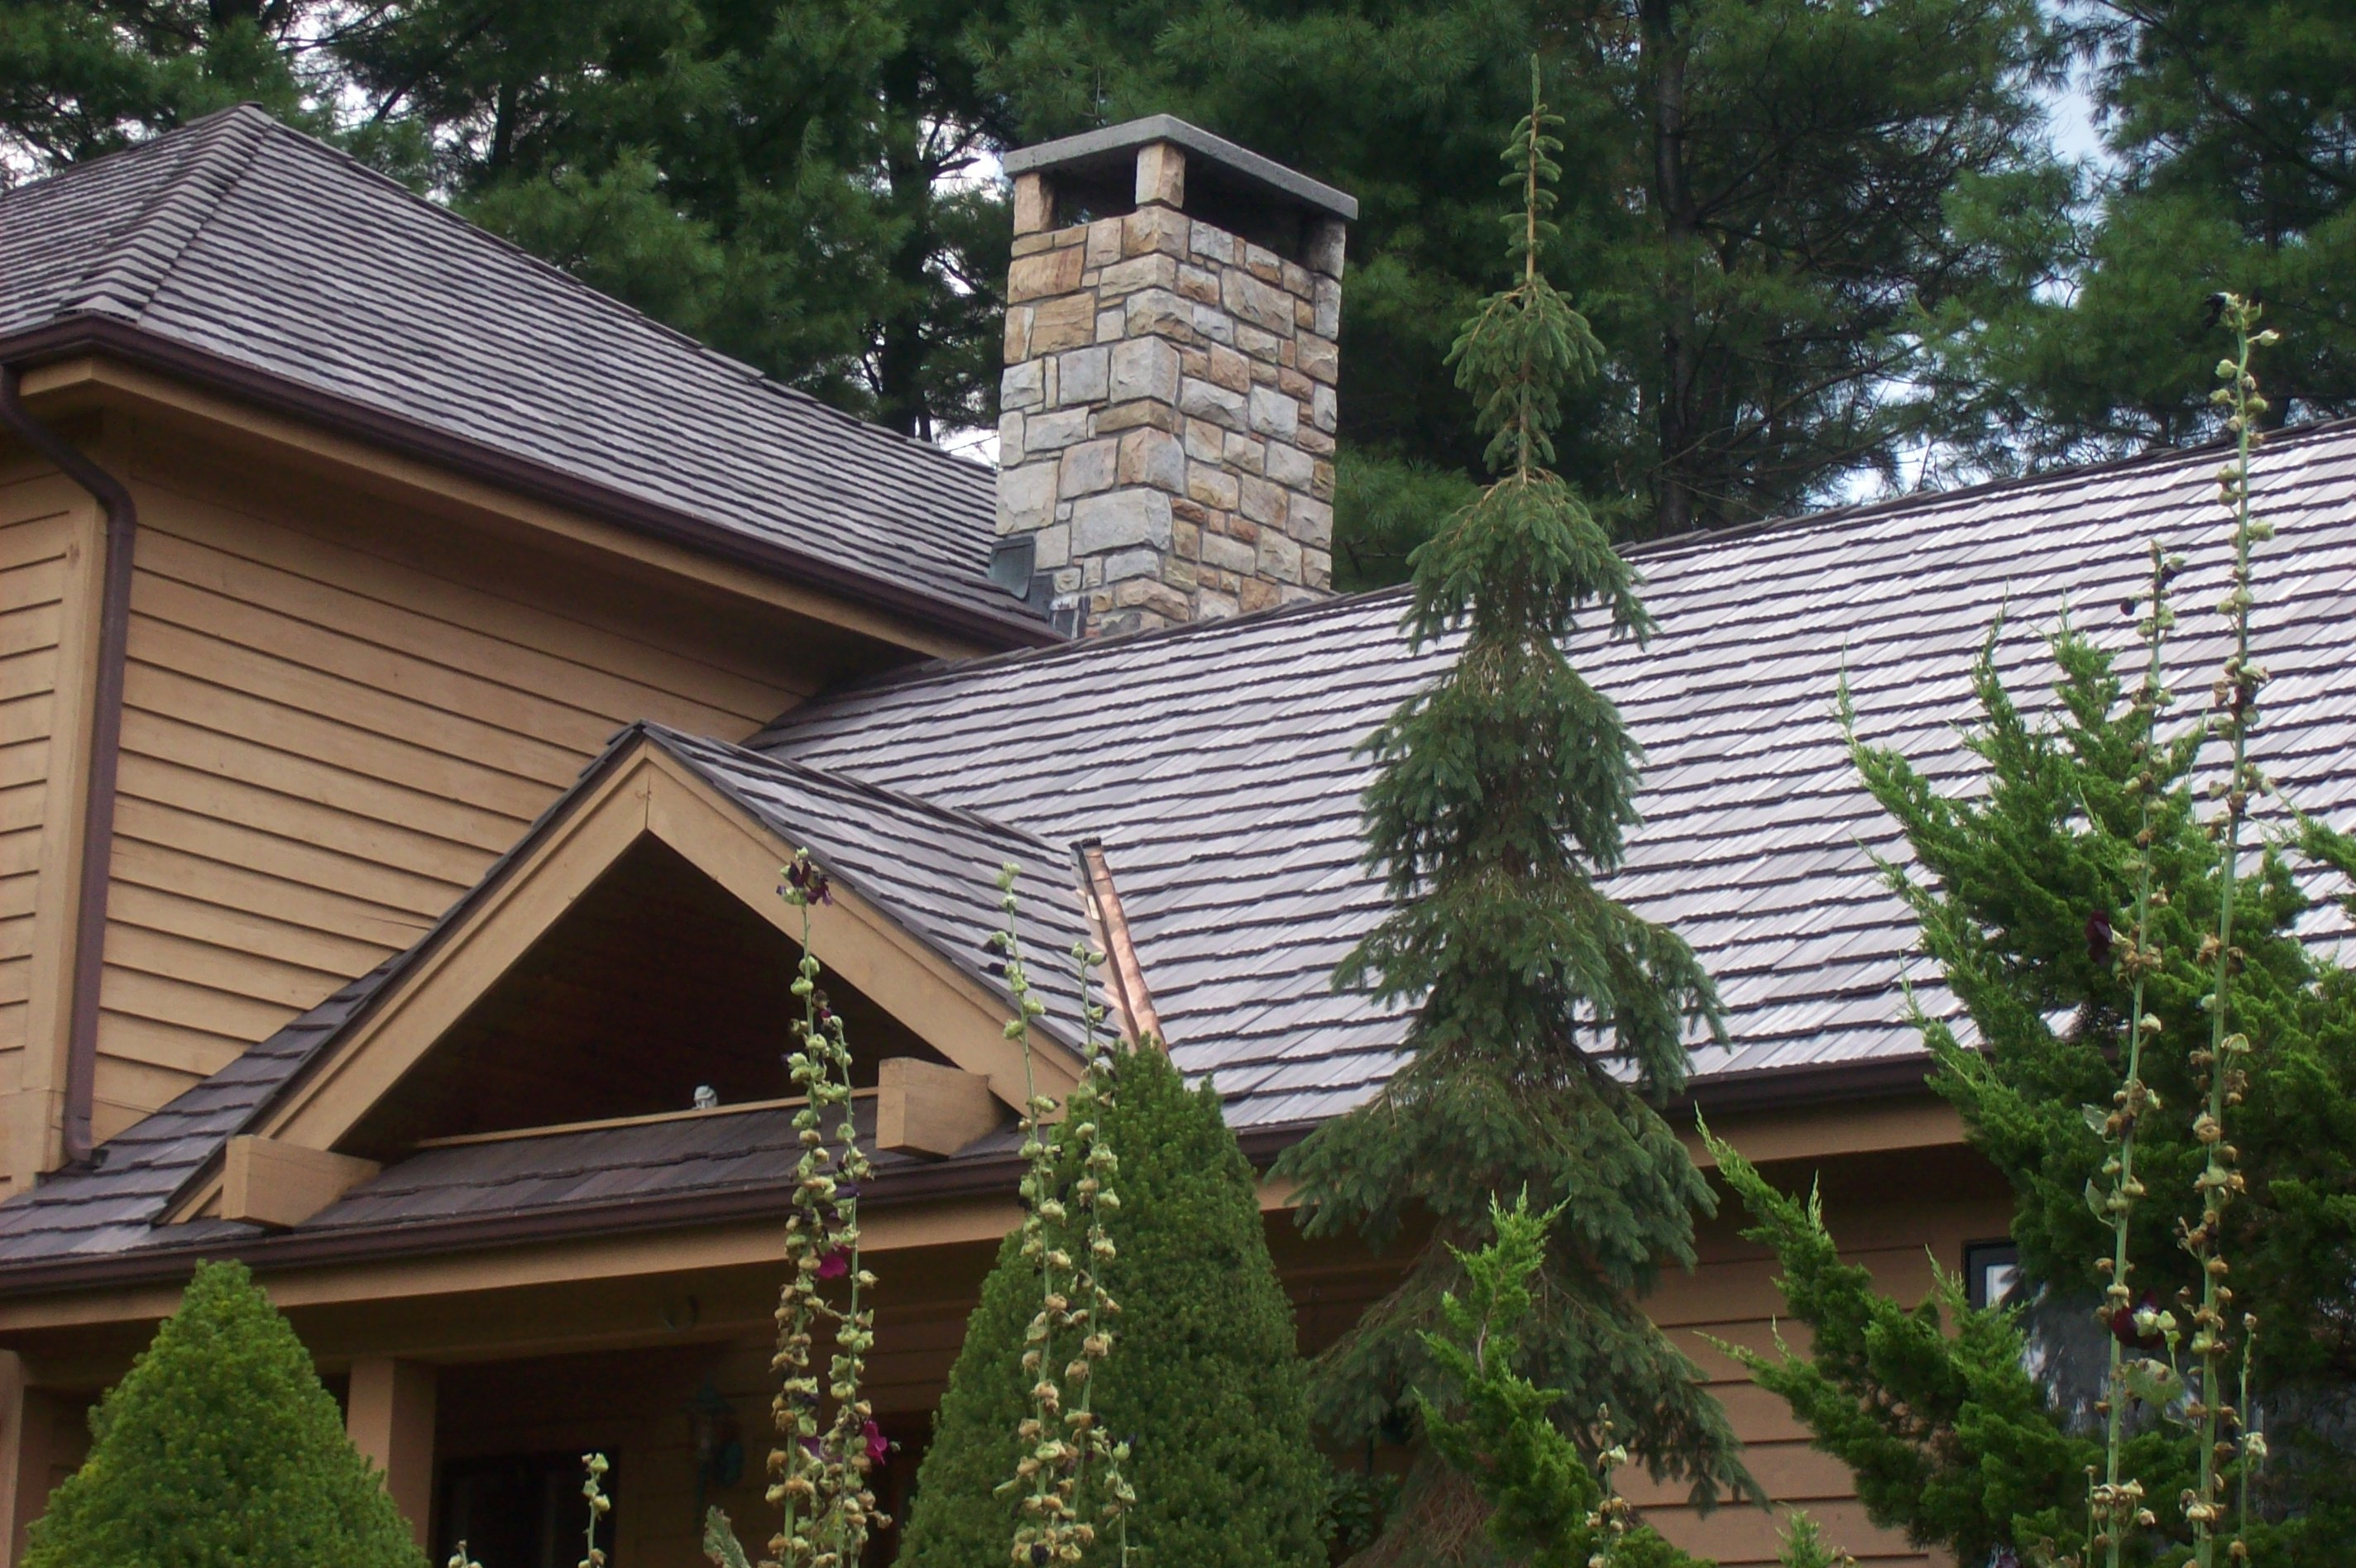 Double digit growth projected for davinci roofscapes in for Davinci roof